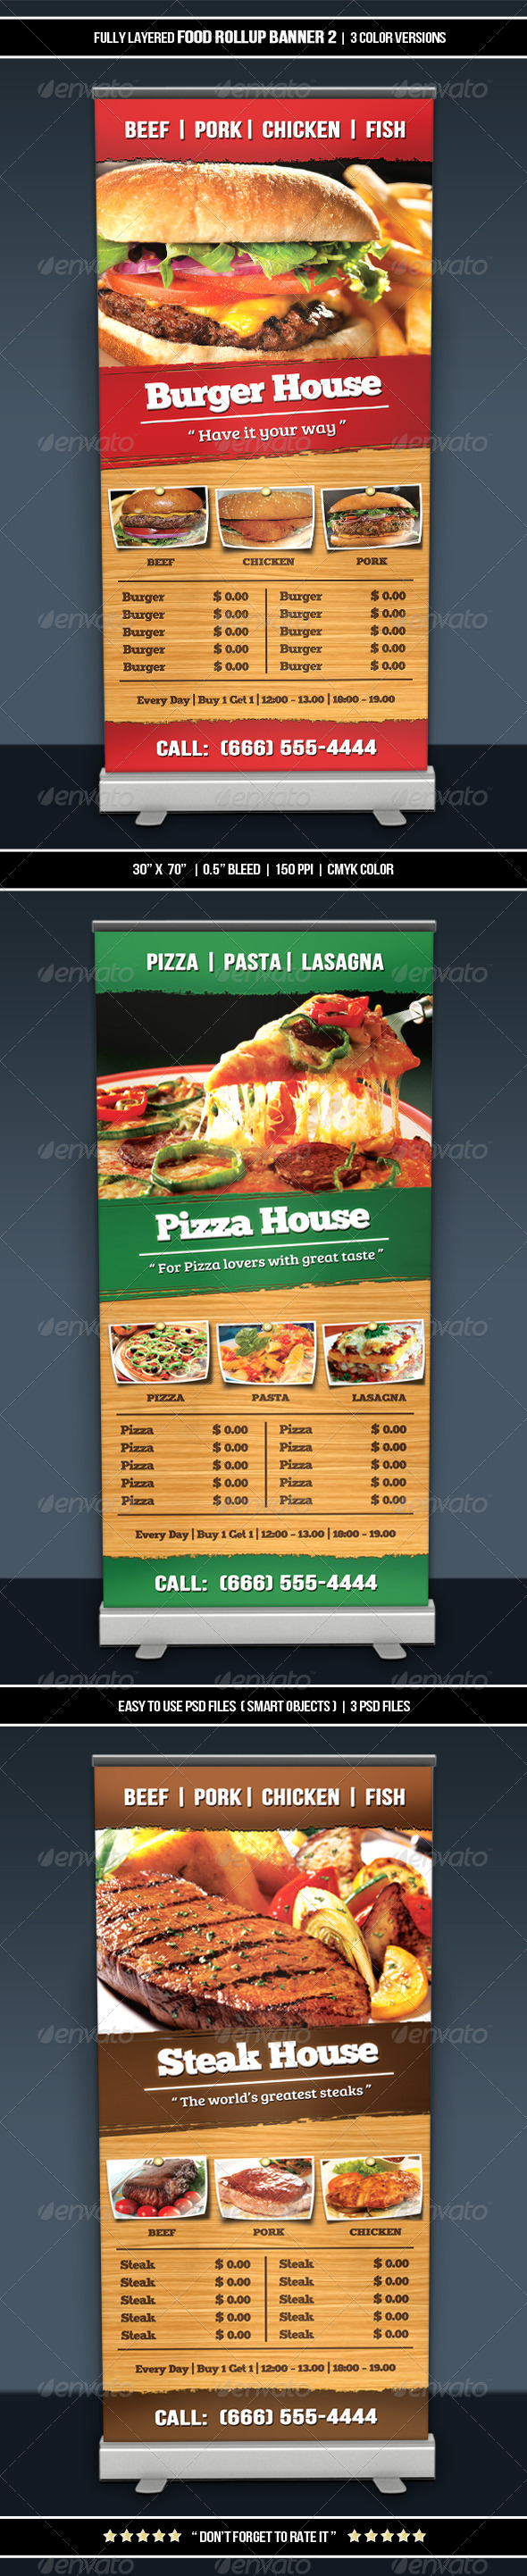 Food Roll-up Banner 2 - Restaurant Flyers